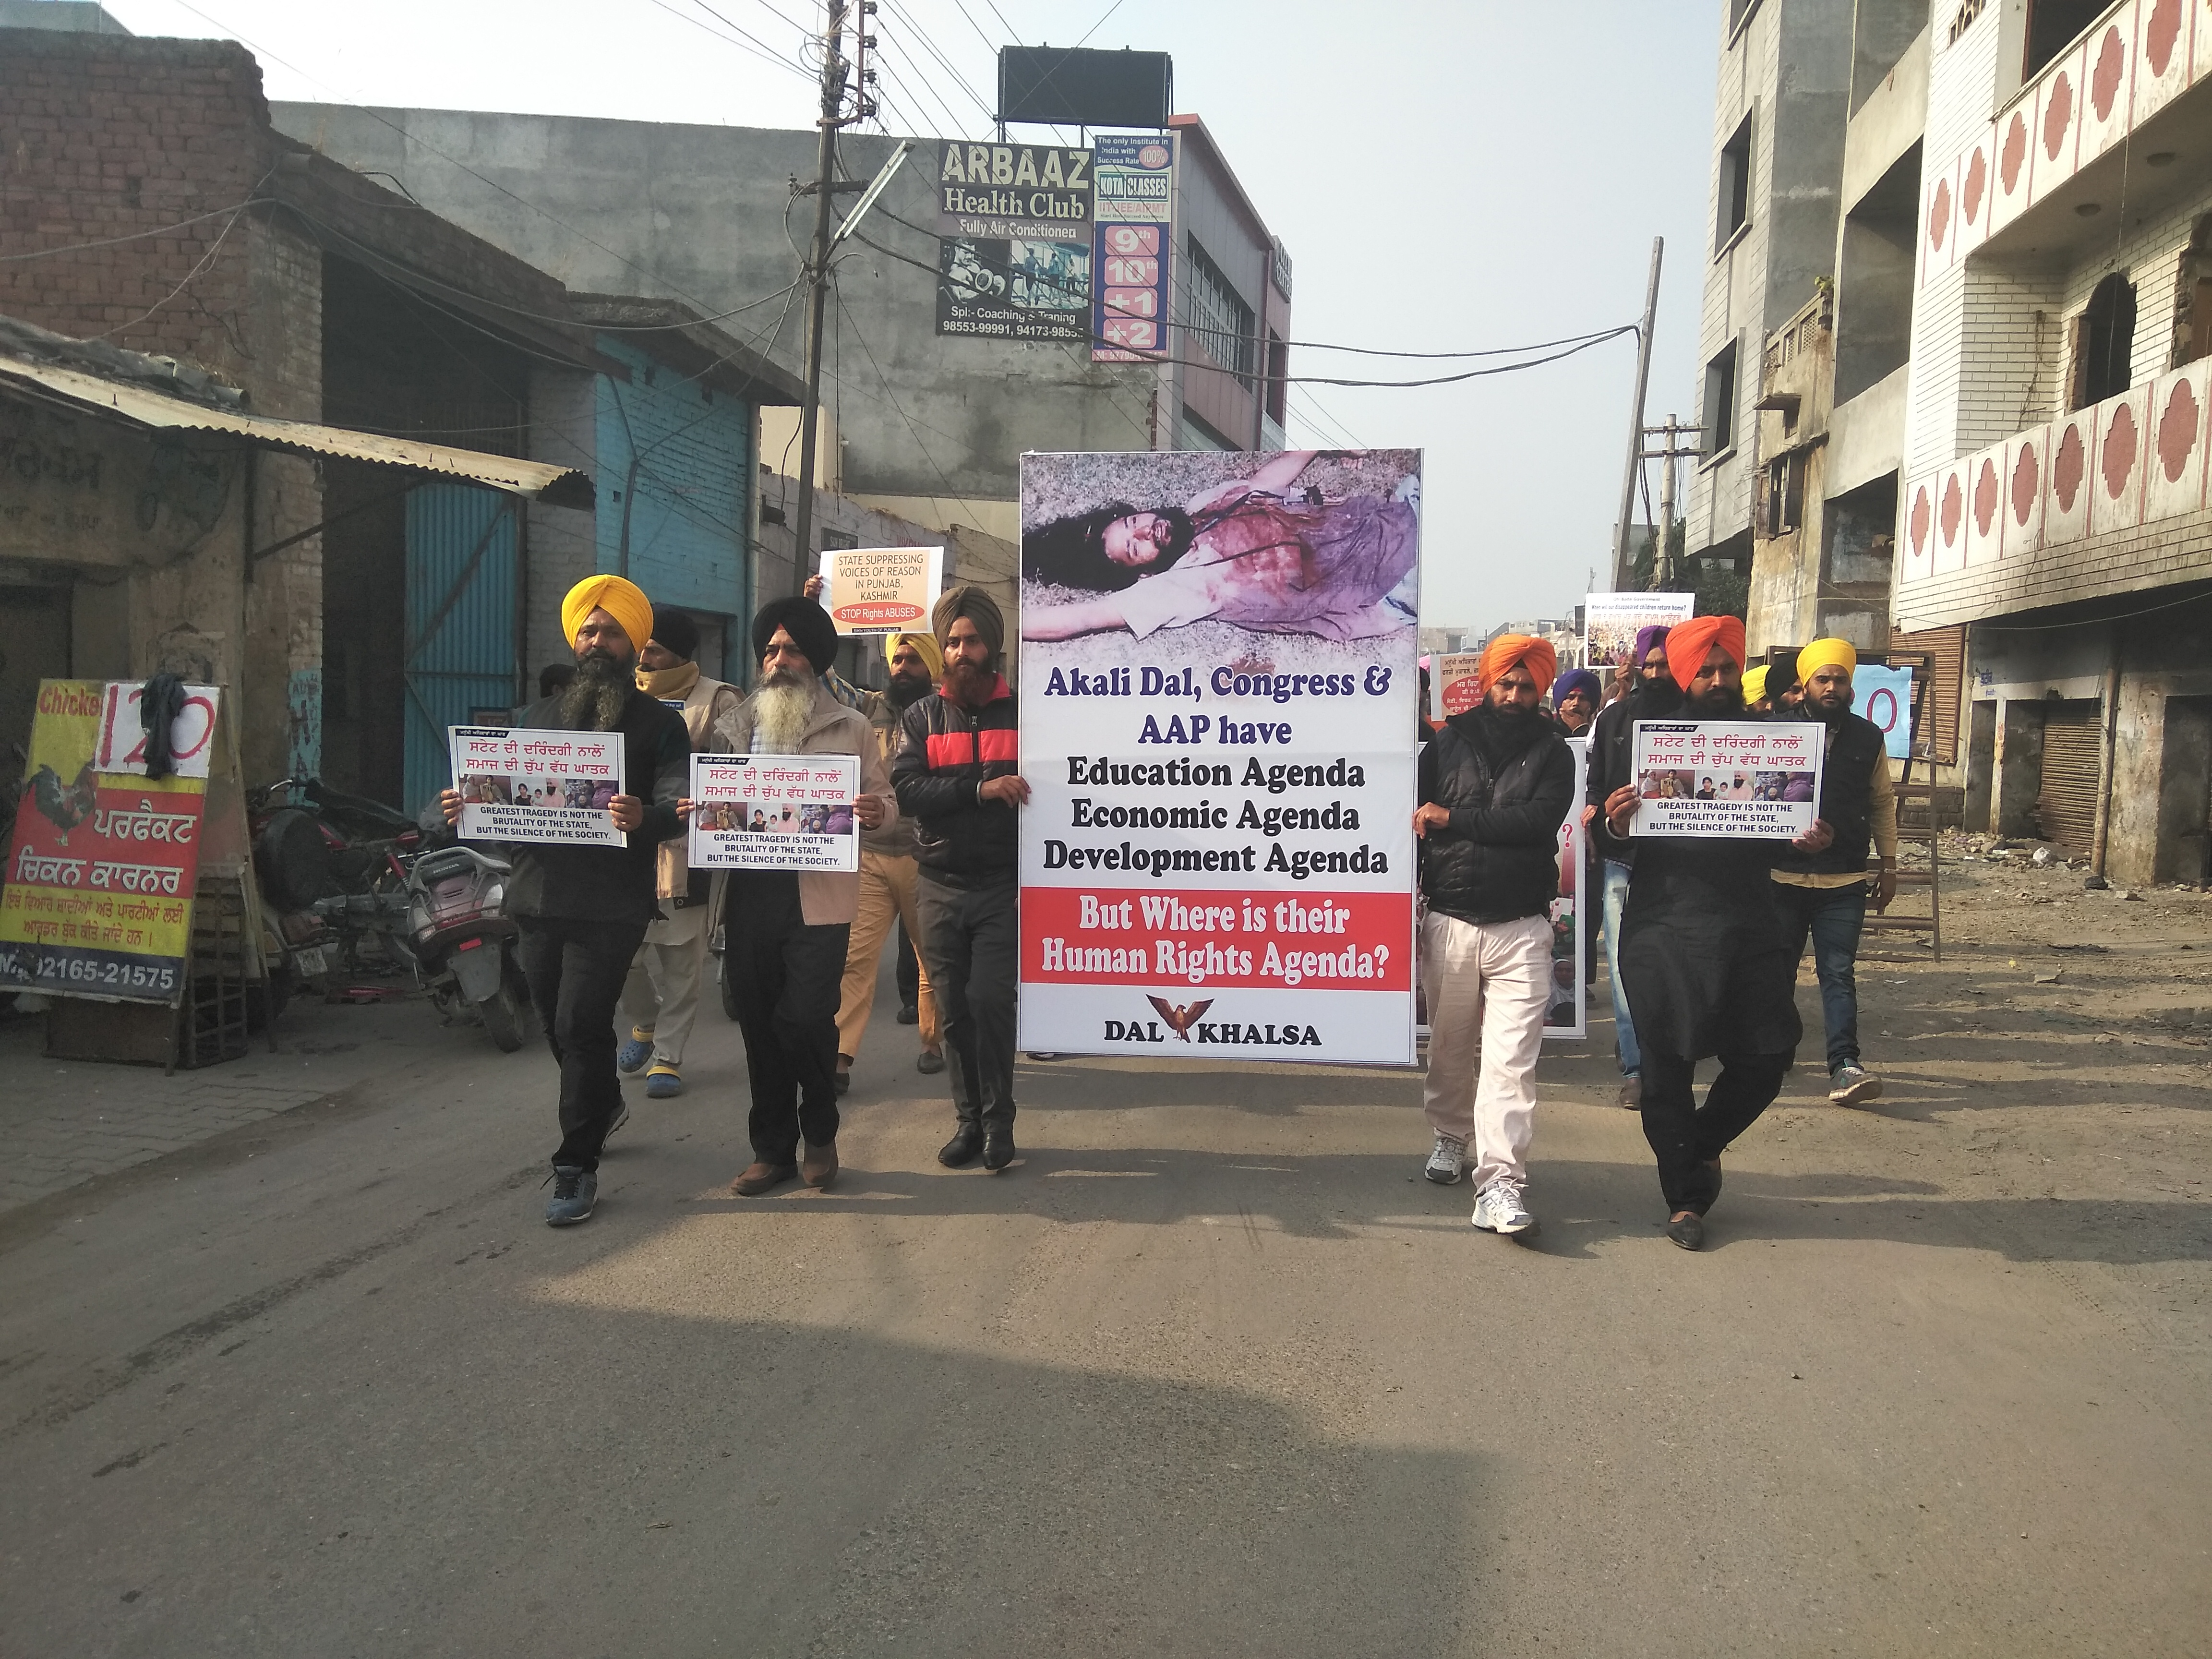 View of March being lead by Dal khalsa [File Photo]